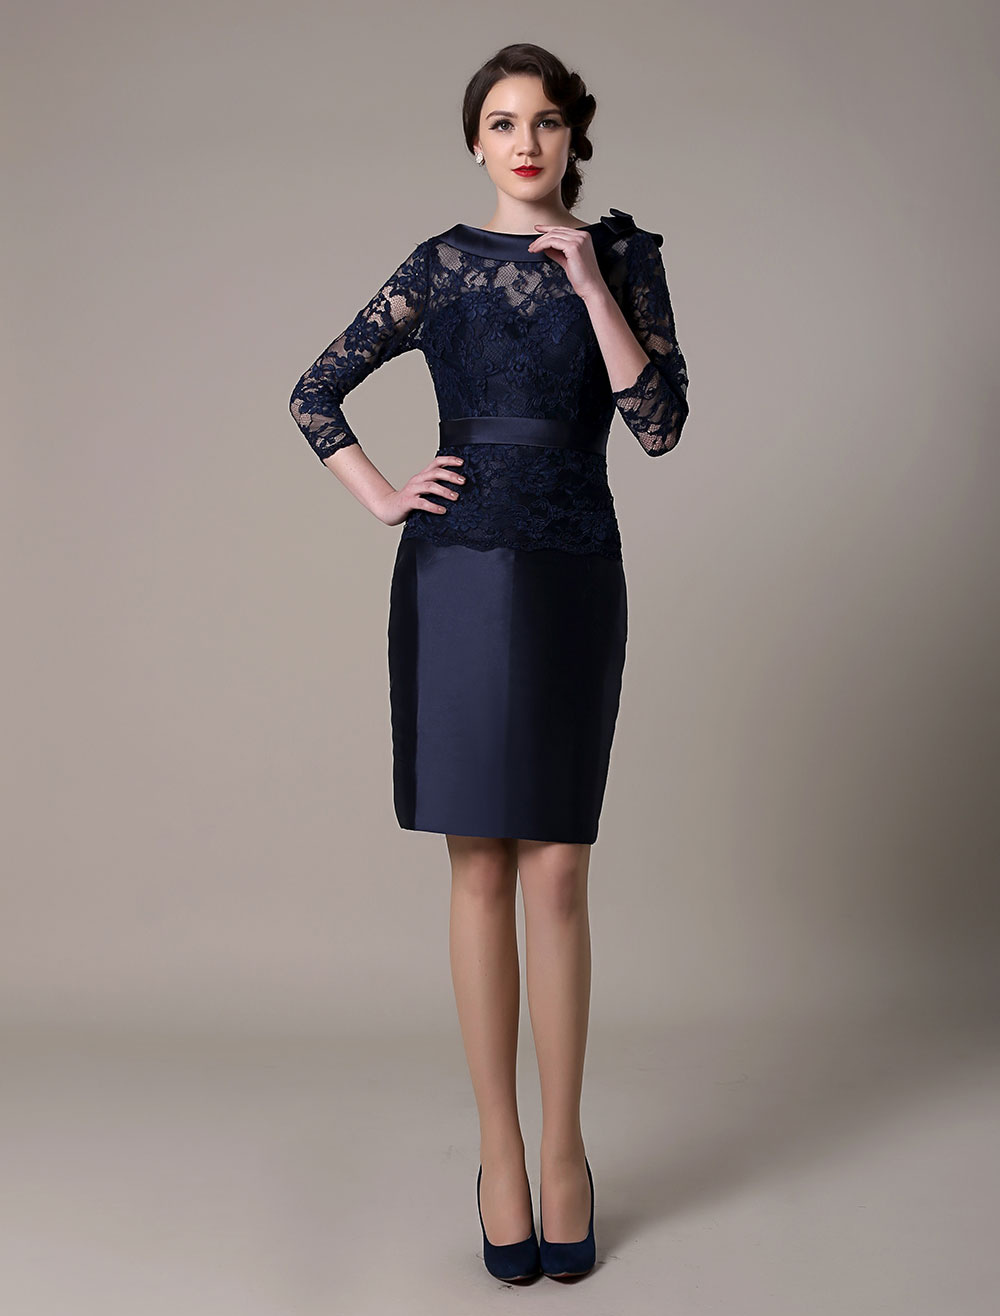 Dark Navy Cocktail Dress Taffeta Lace Homecoming Dress Women Wedding